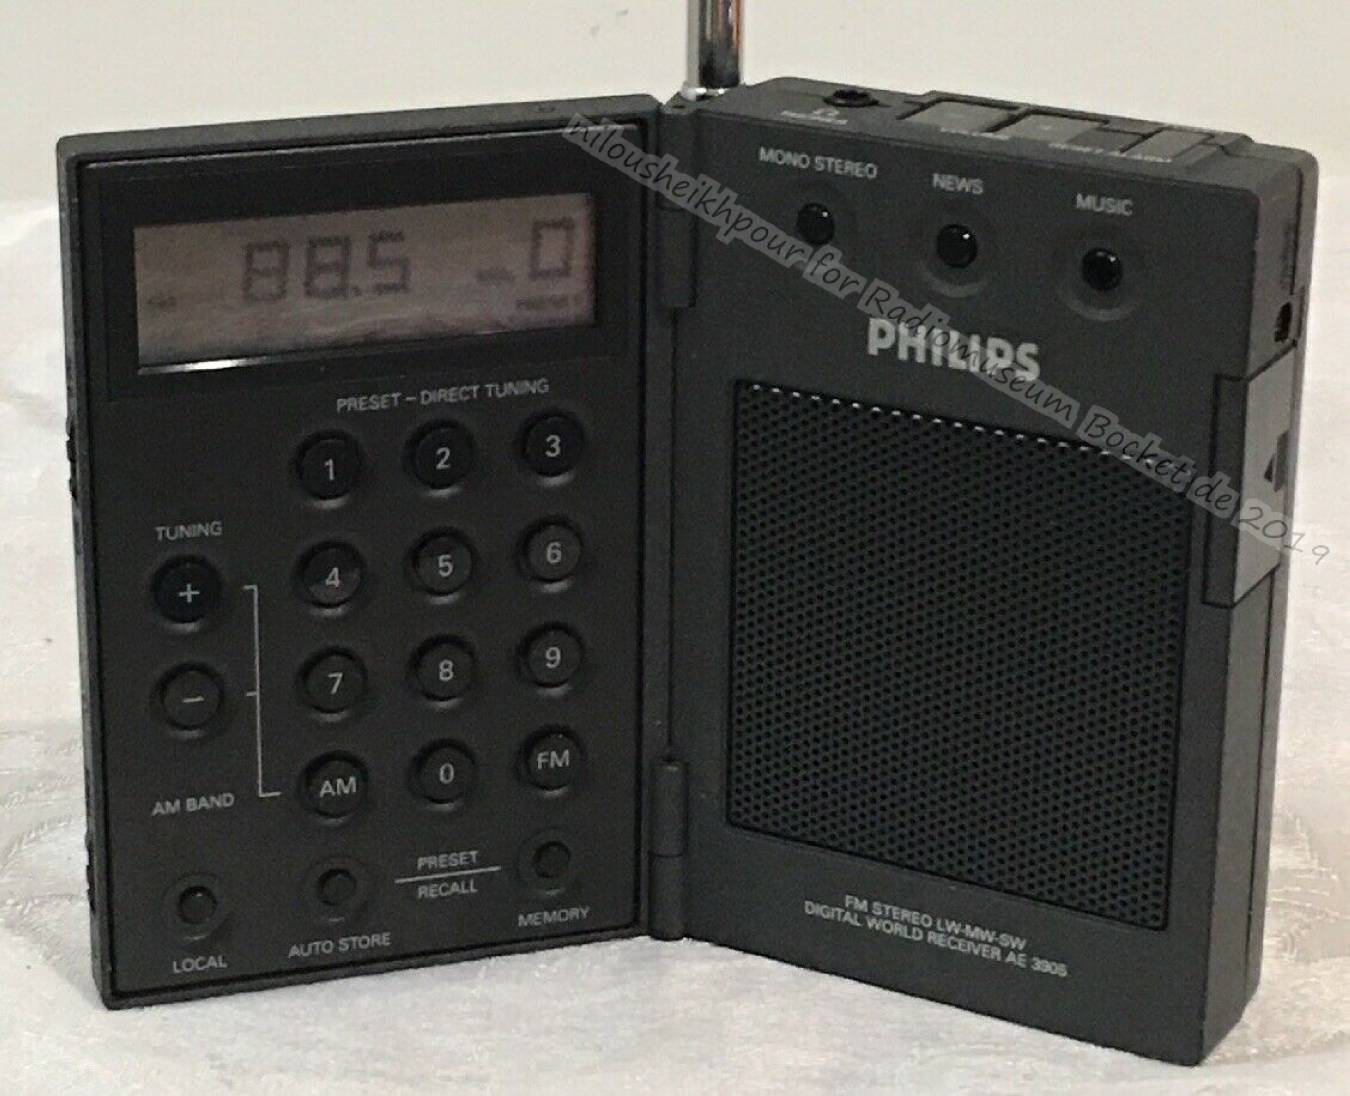 Datei:Philips AE-3905 nilousheikhpour 2019 5.jpg